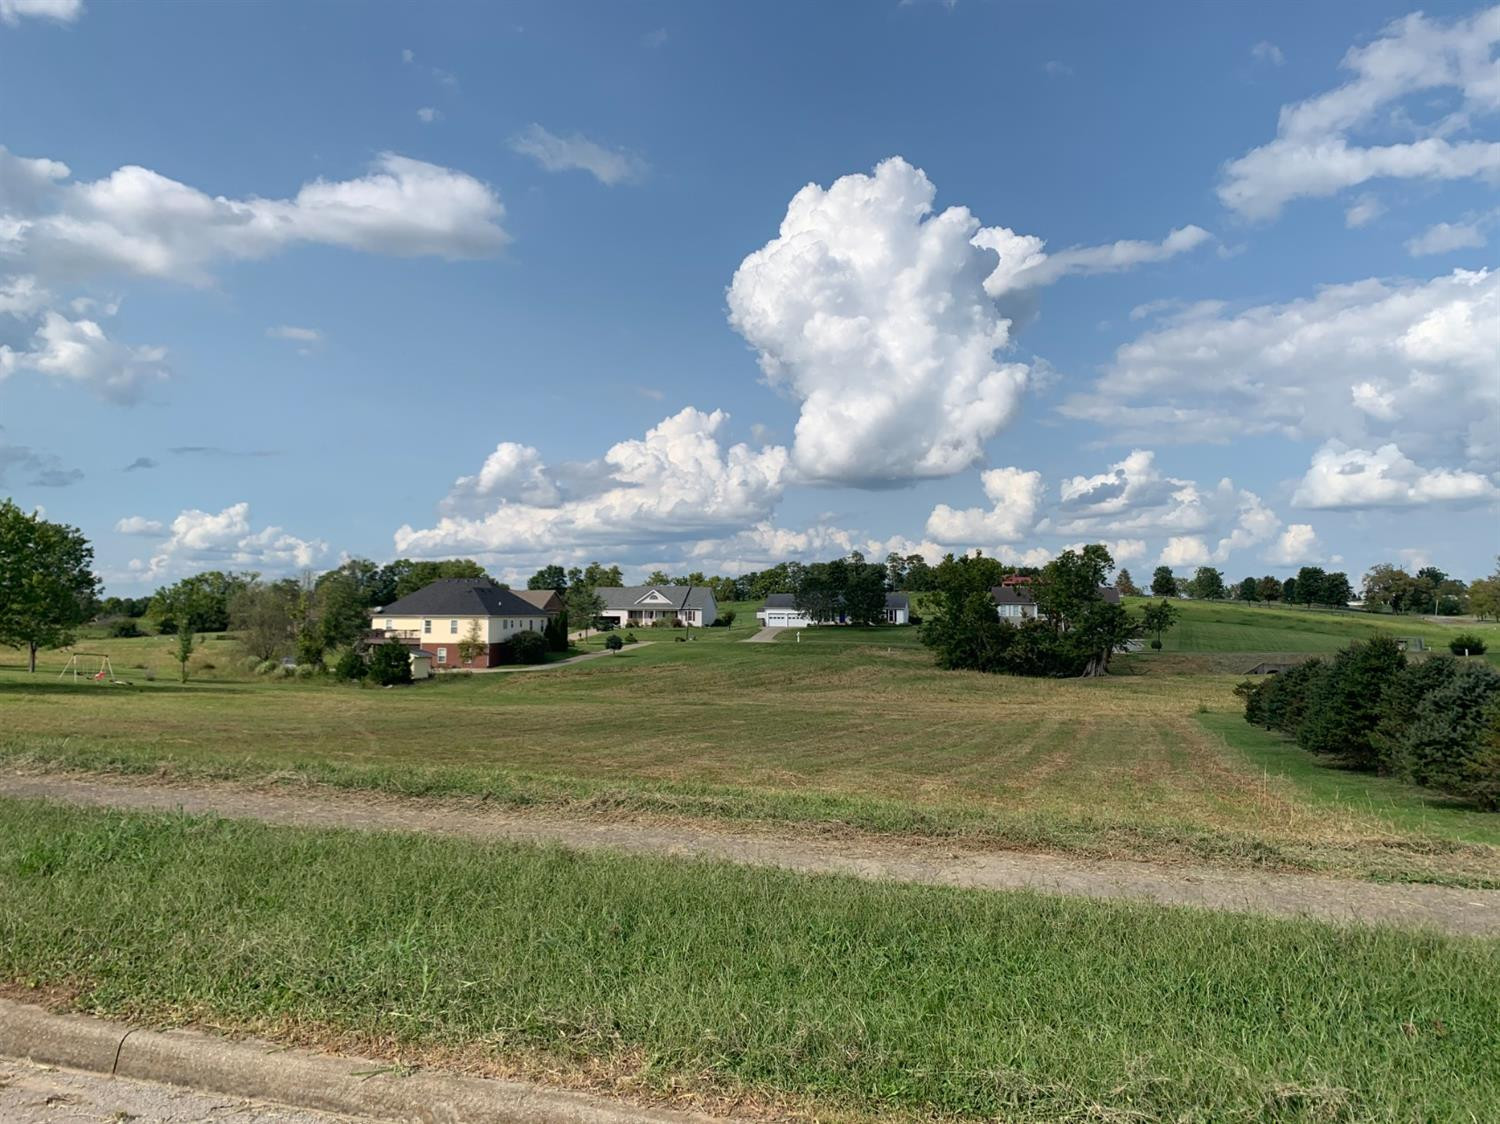 106 S Braxton Dr, Perryville, Kentucky 40468, ,Farm/land,For Sale,S Braxton Dr,20101745